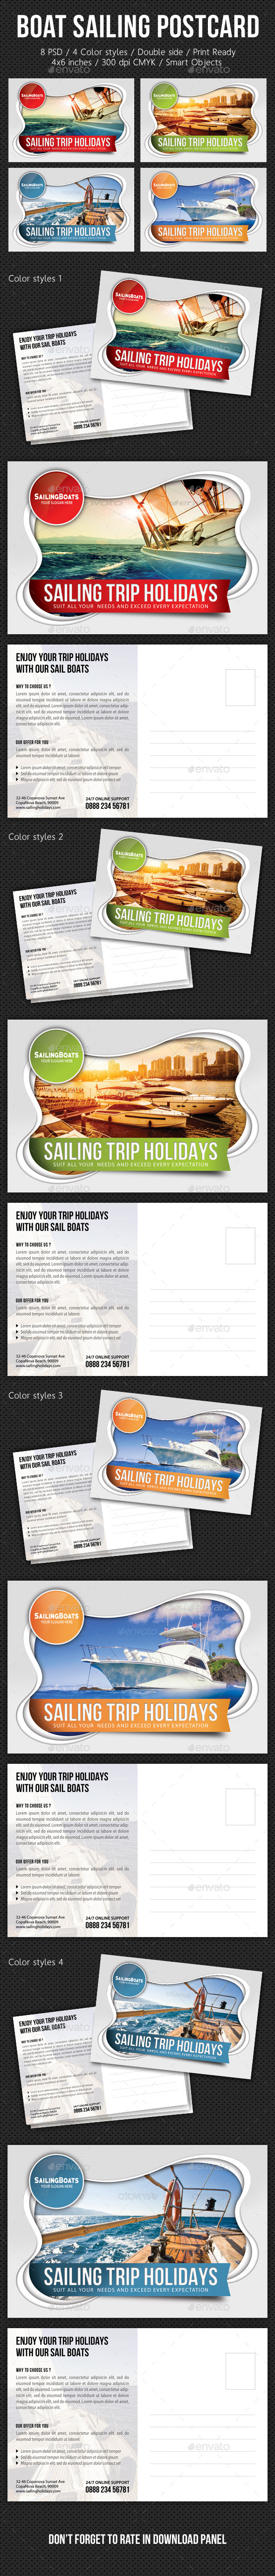 GraphicRiver Boat Sailing Postcard Template V03 10478108